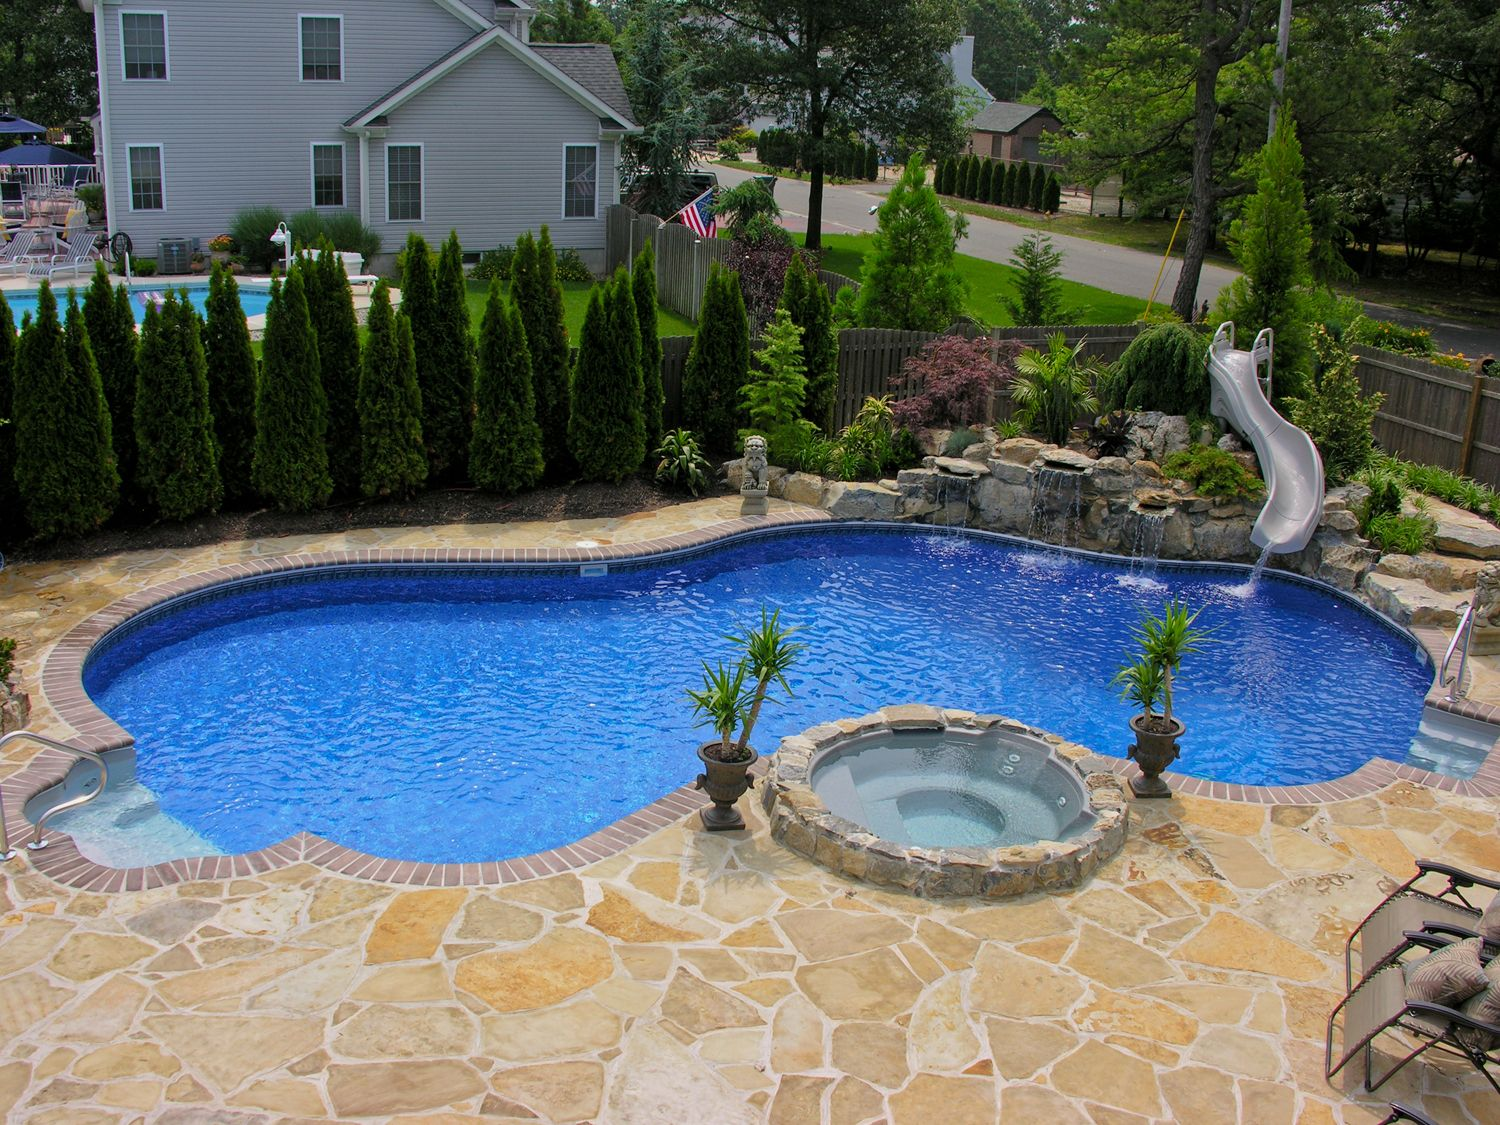 Pool town nj inground swimming pools with spa and slide for Swimming pool and spa design